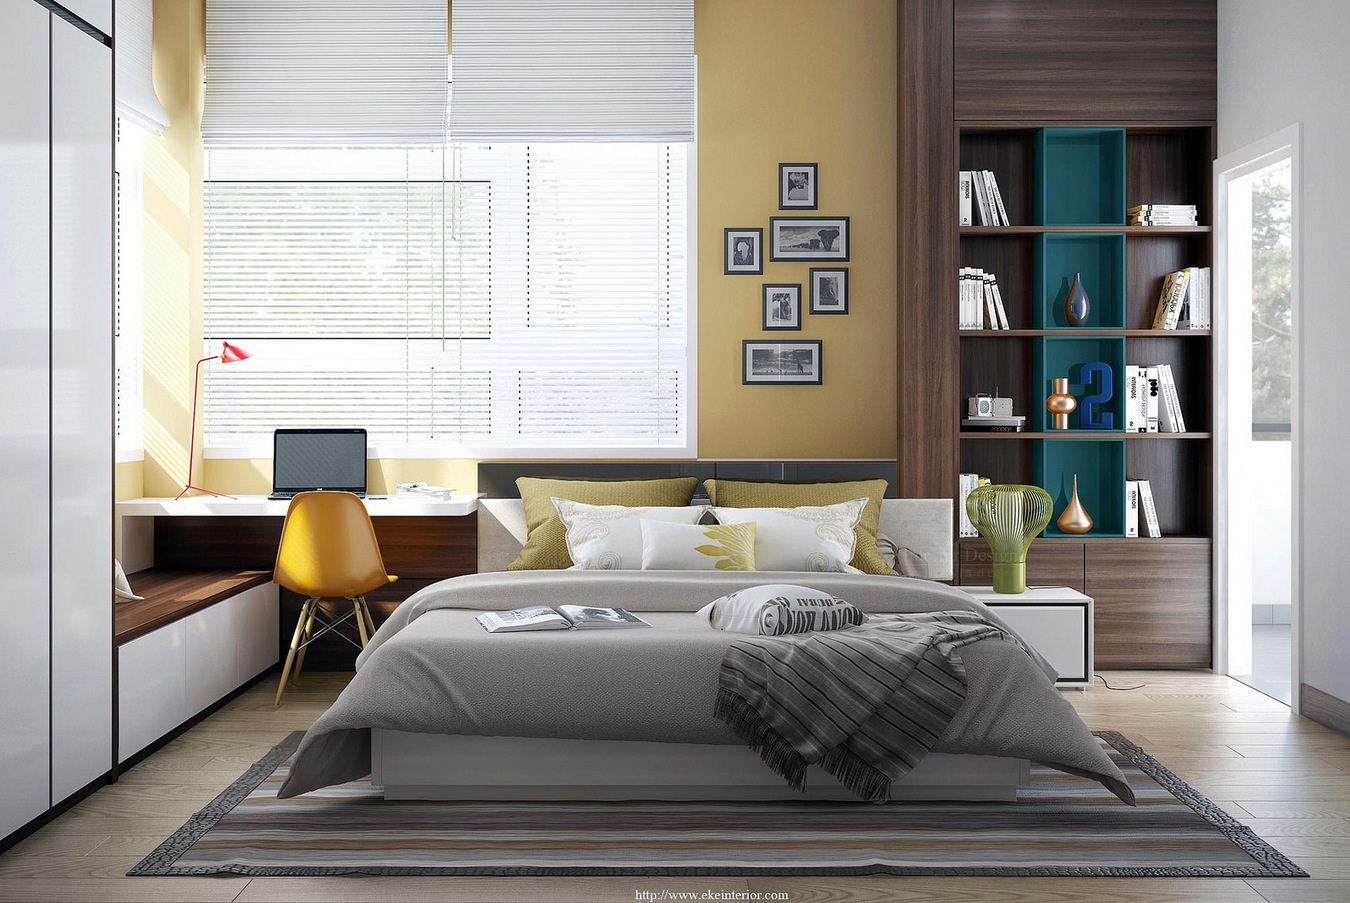 Bedroom Room Design 20 modern bedroom designs